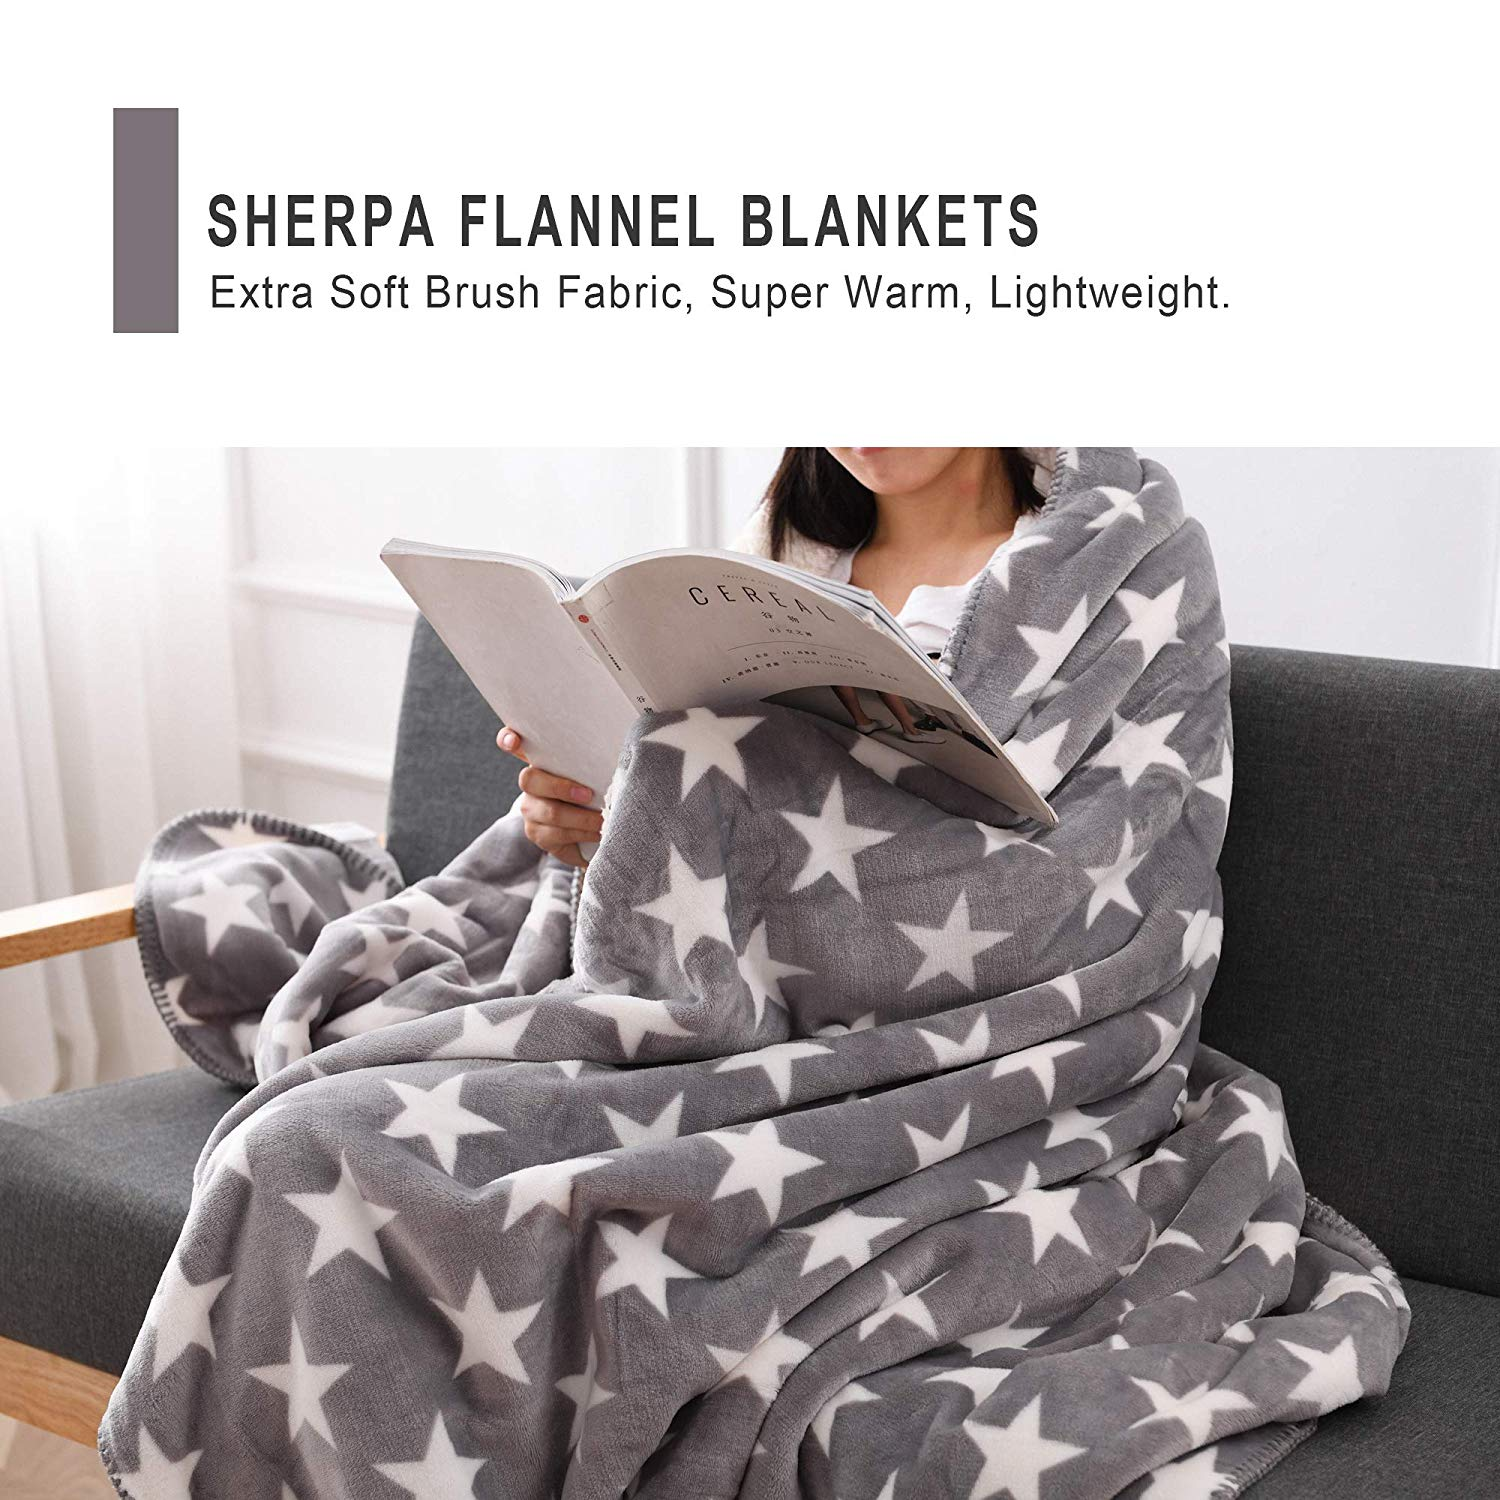 Sherpa Throw Blanket, 60″ x 80″ in 12 colors! 50% off, just $16.99 on Amazon